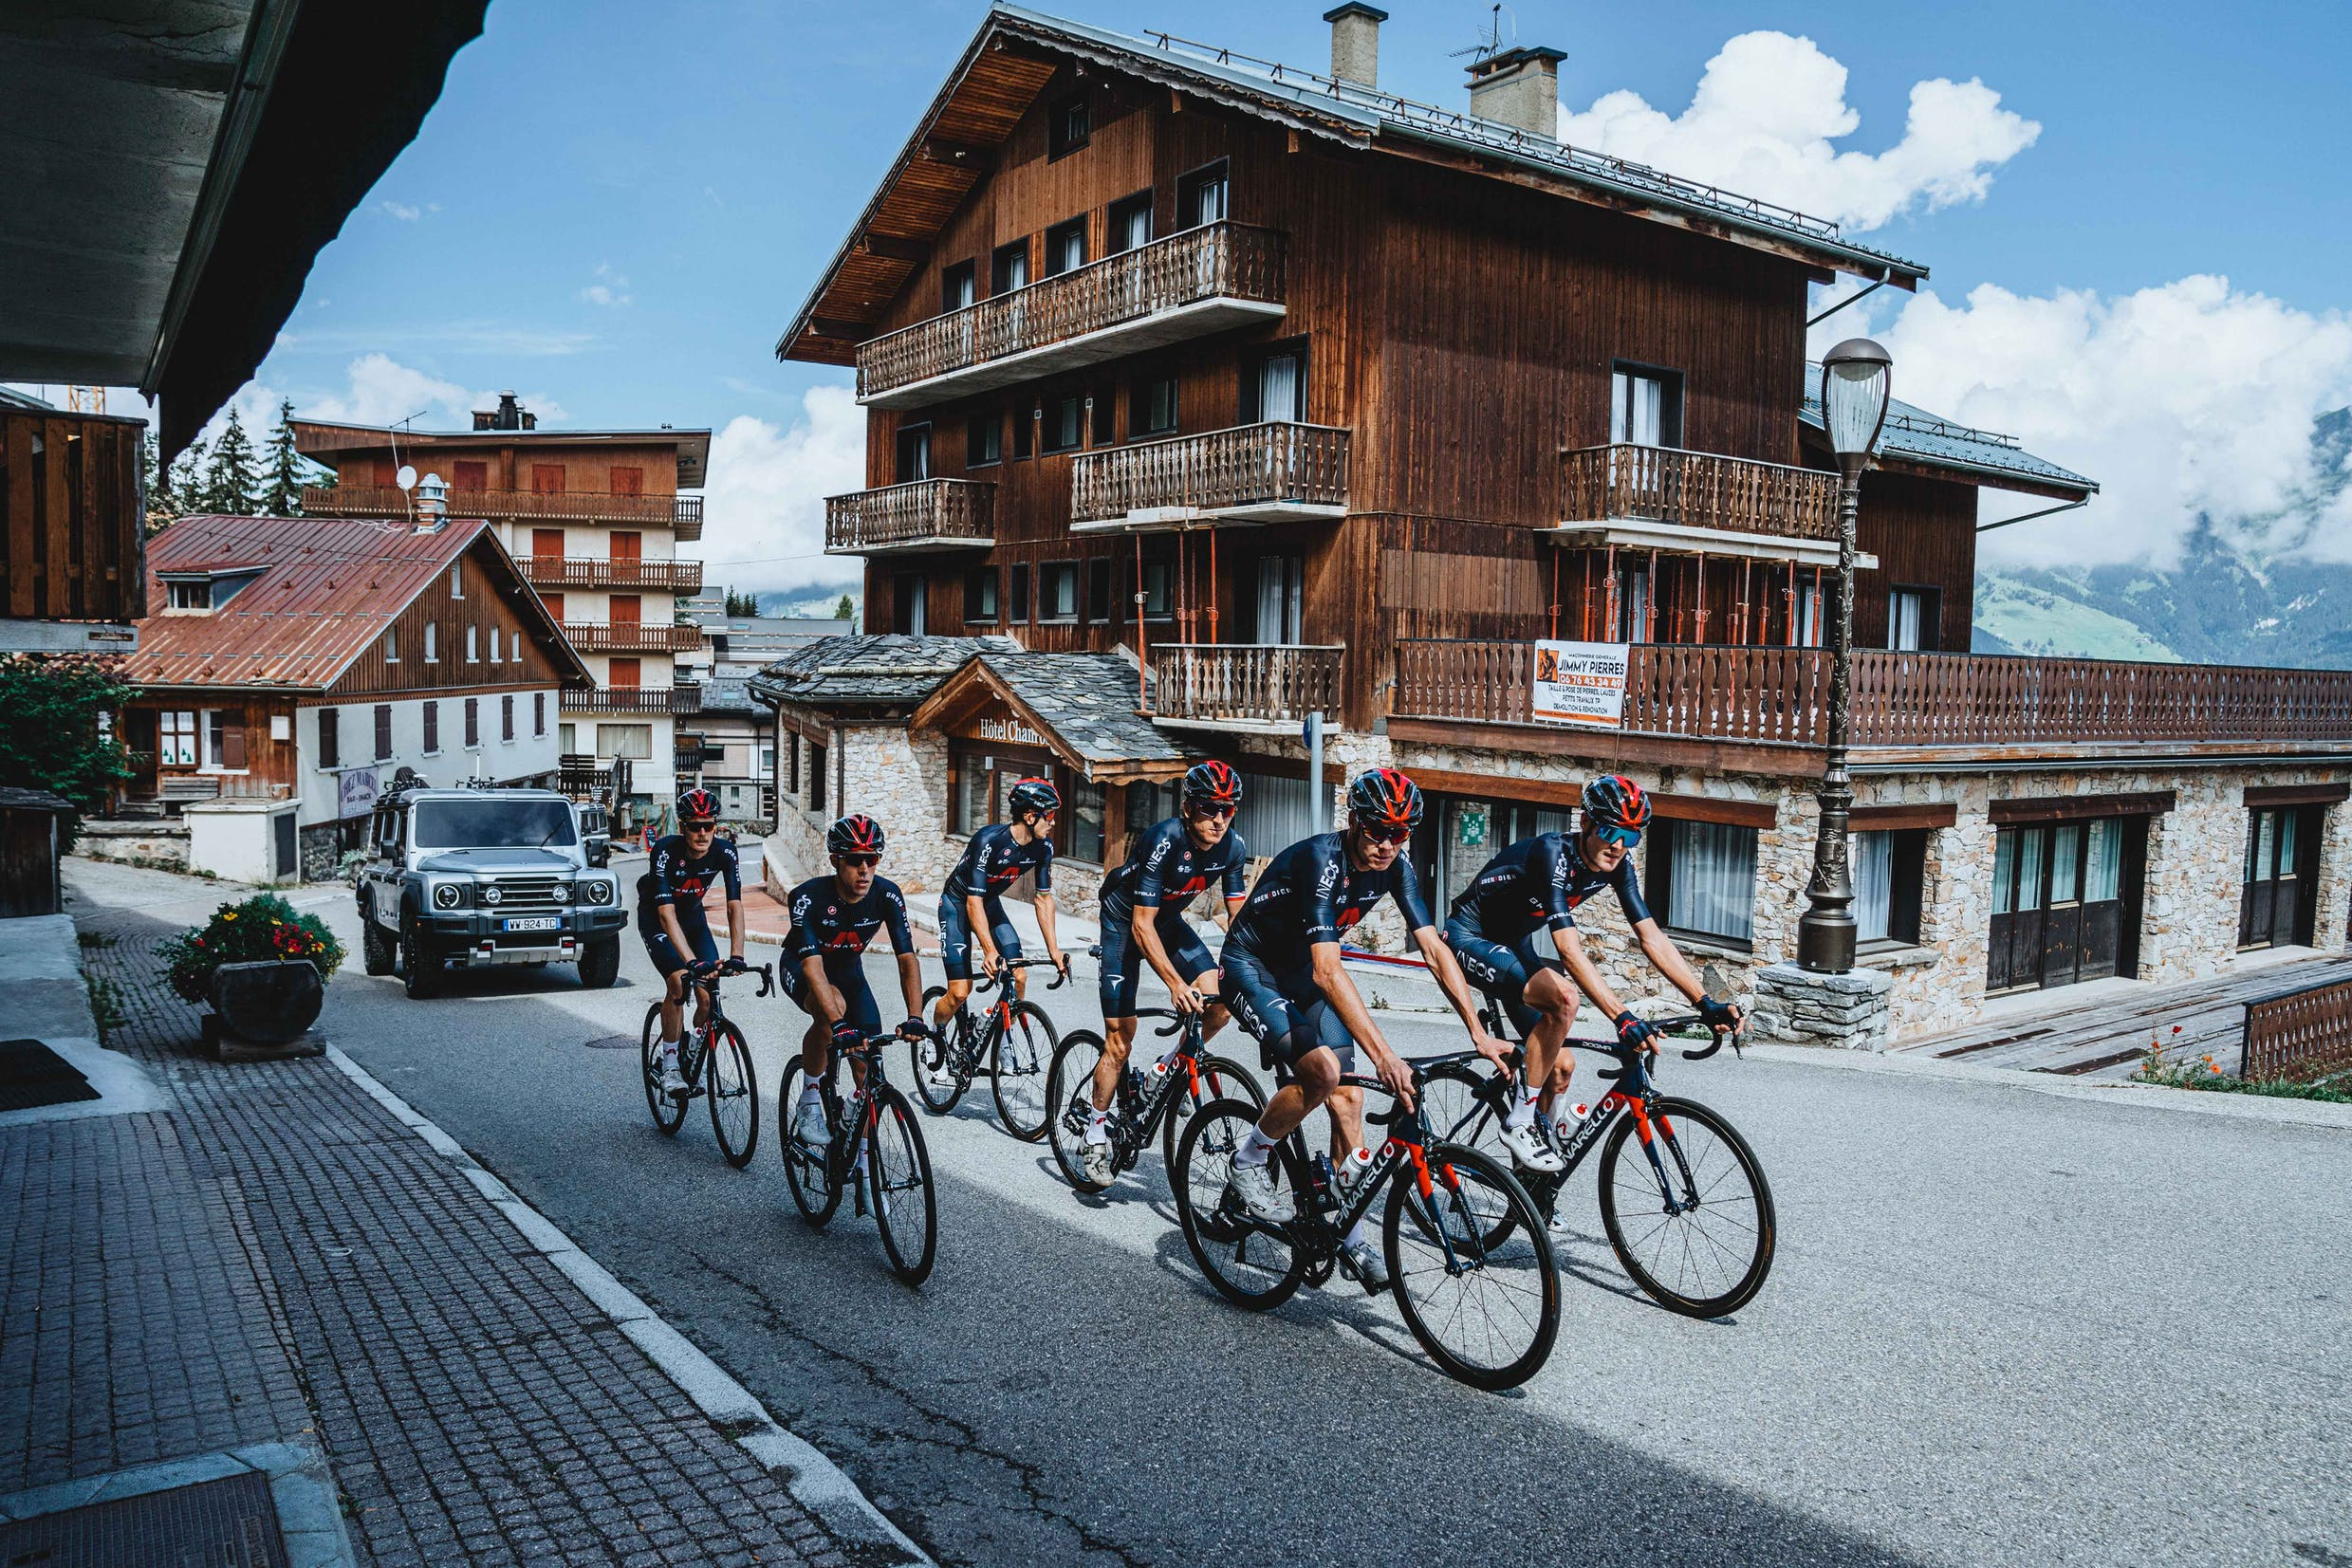 INEOS Grenadiers launch ahead of Tour de France